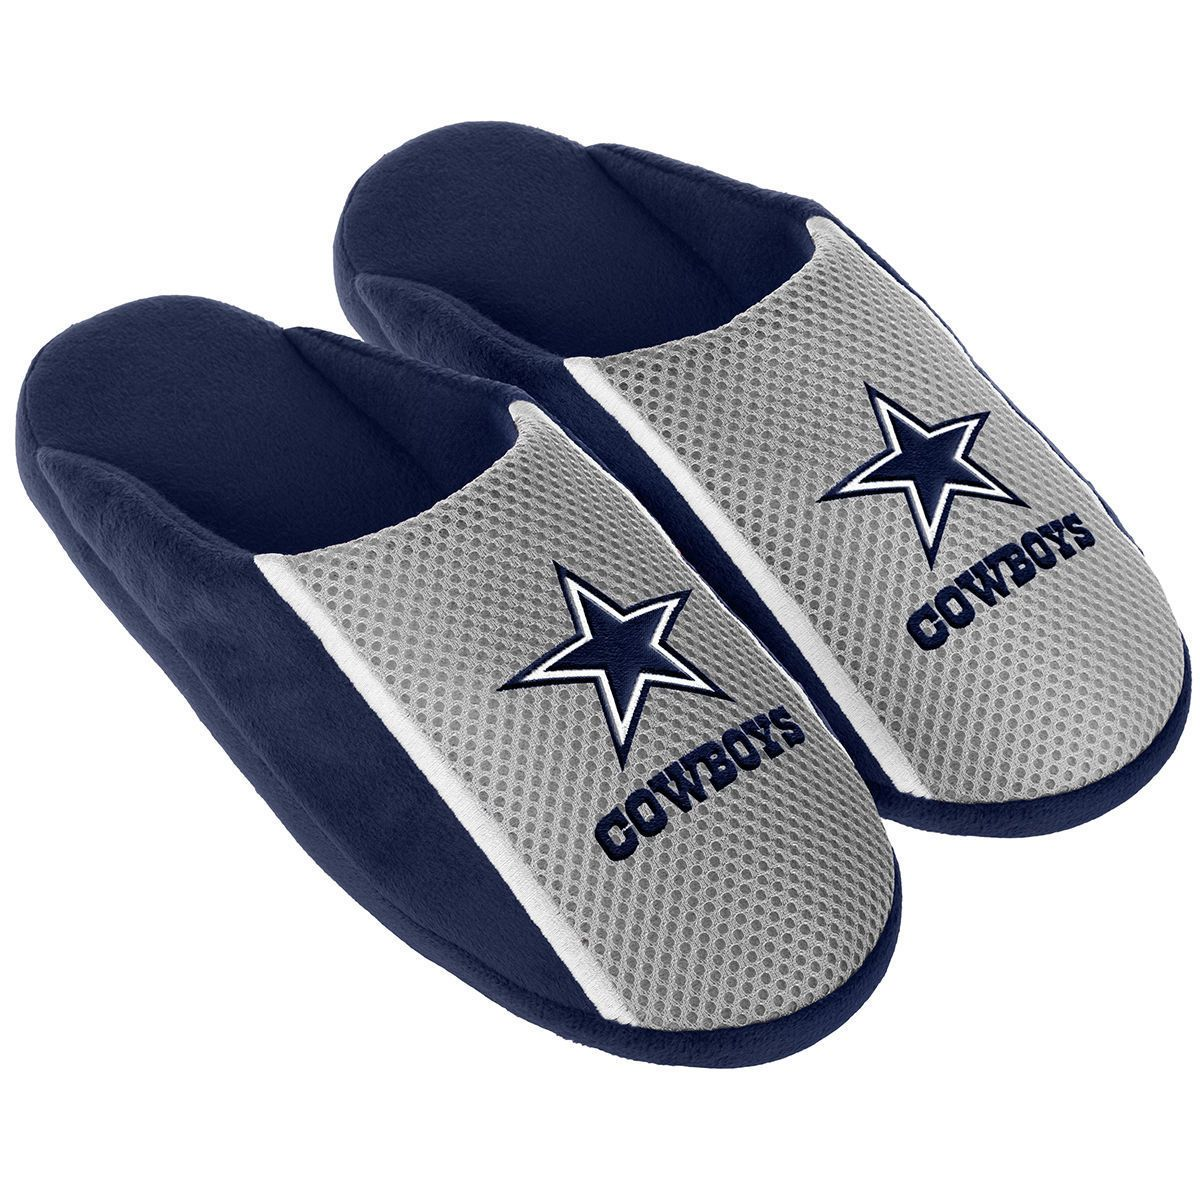 2e567171 Slippers 163550: Pair Dallas Cowboys Jersey Slide Slippers - Team ...